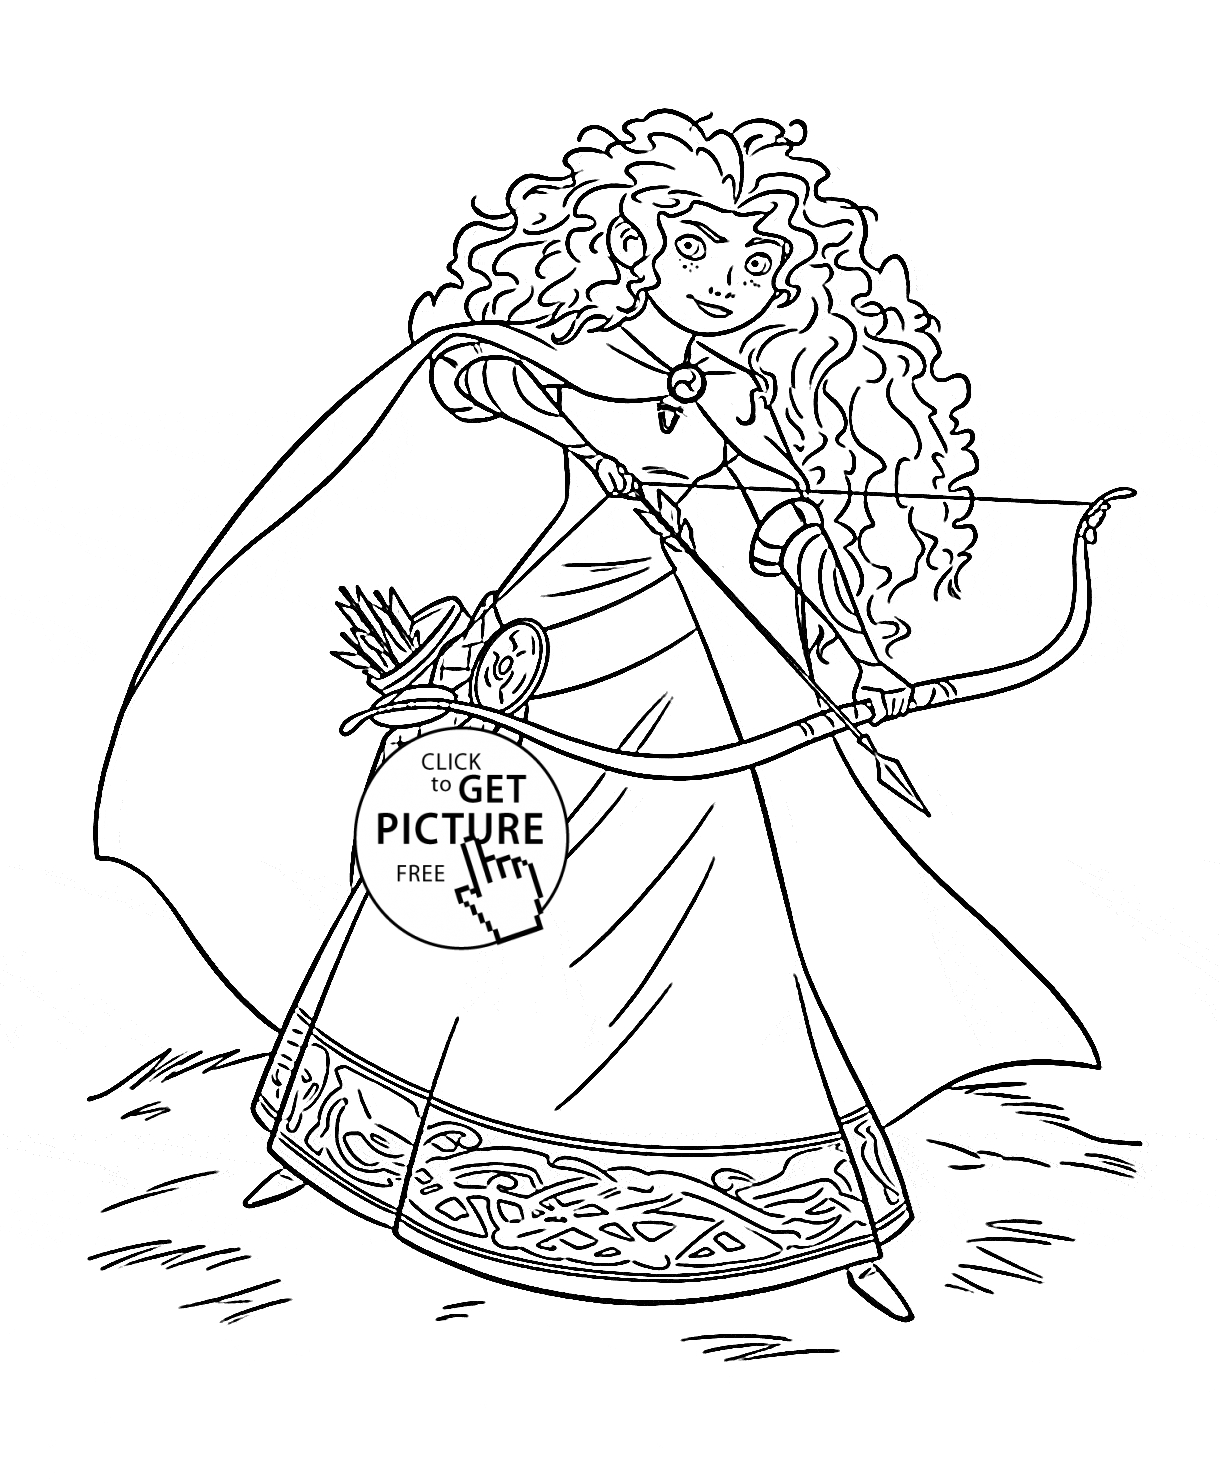 disney princess coloring pages free to print - brave princess merida coloring page for kids disney princess coloring pages printables free